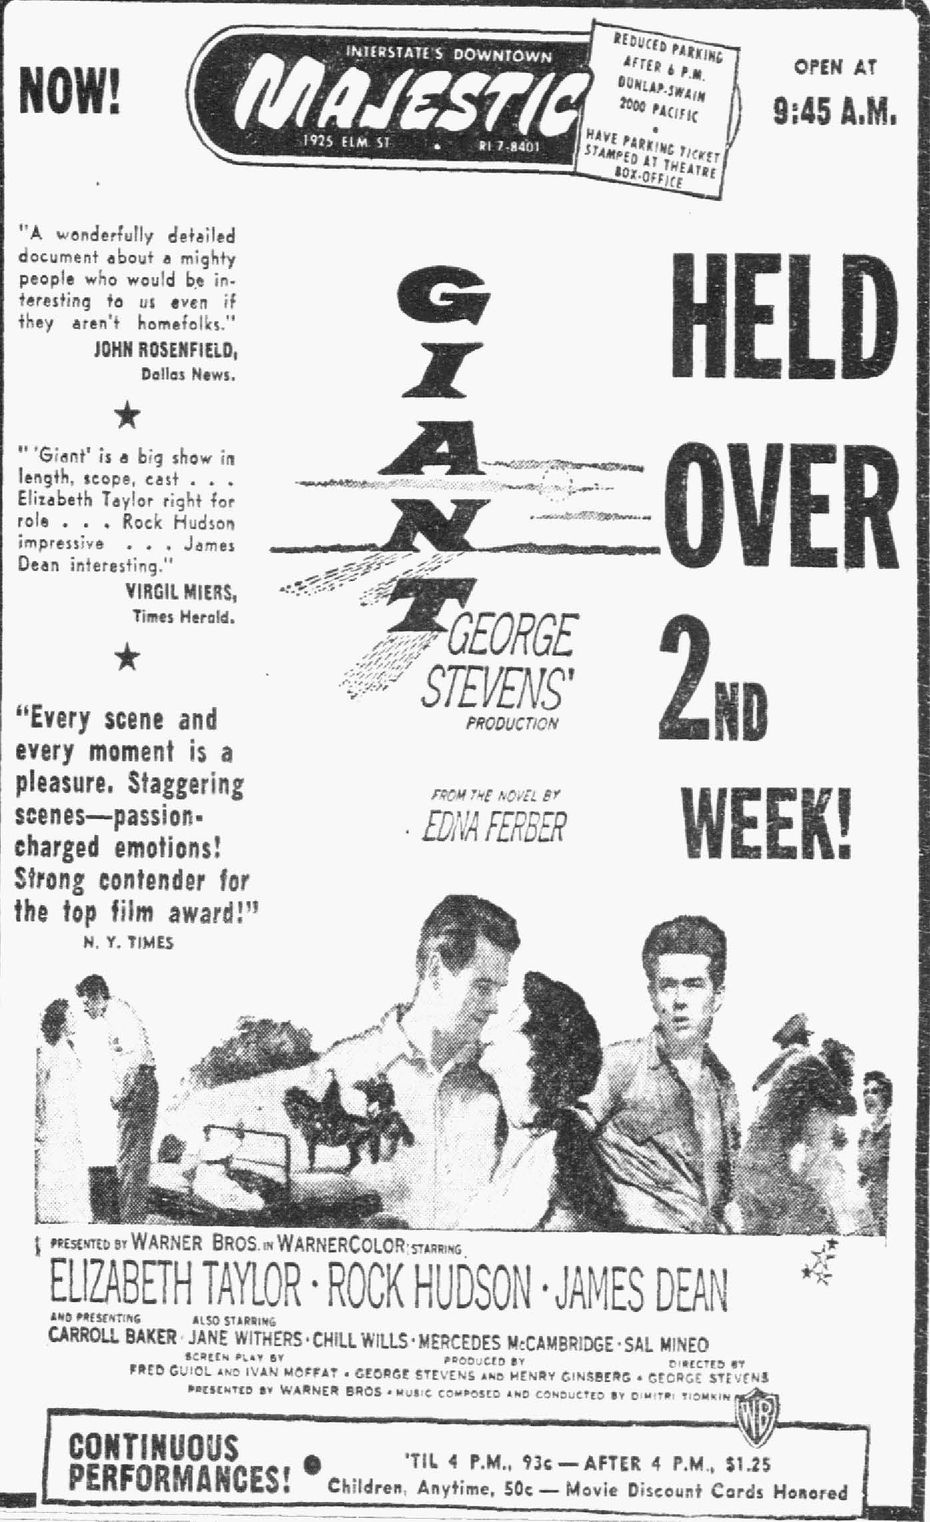 A movie ad in The Dallas Morning News promoting the movie Giant in 1956.